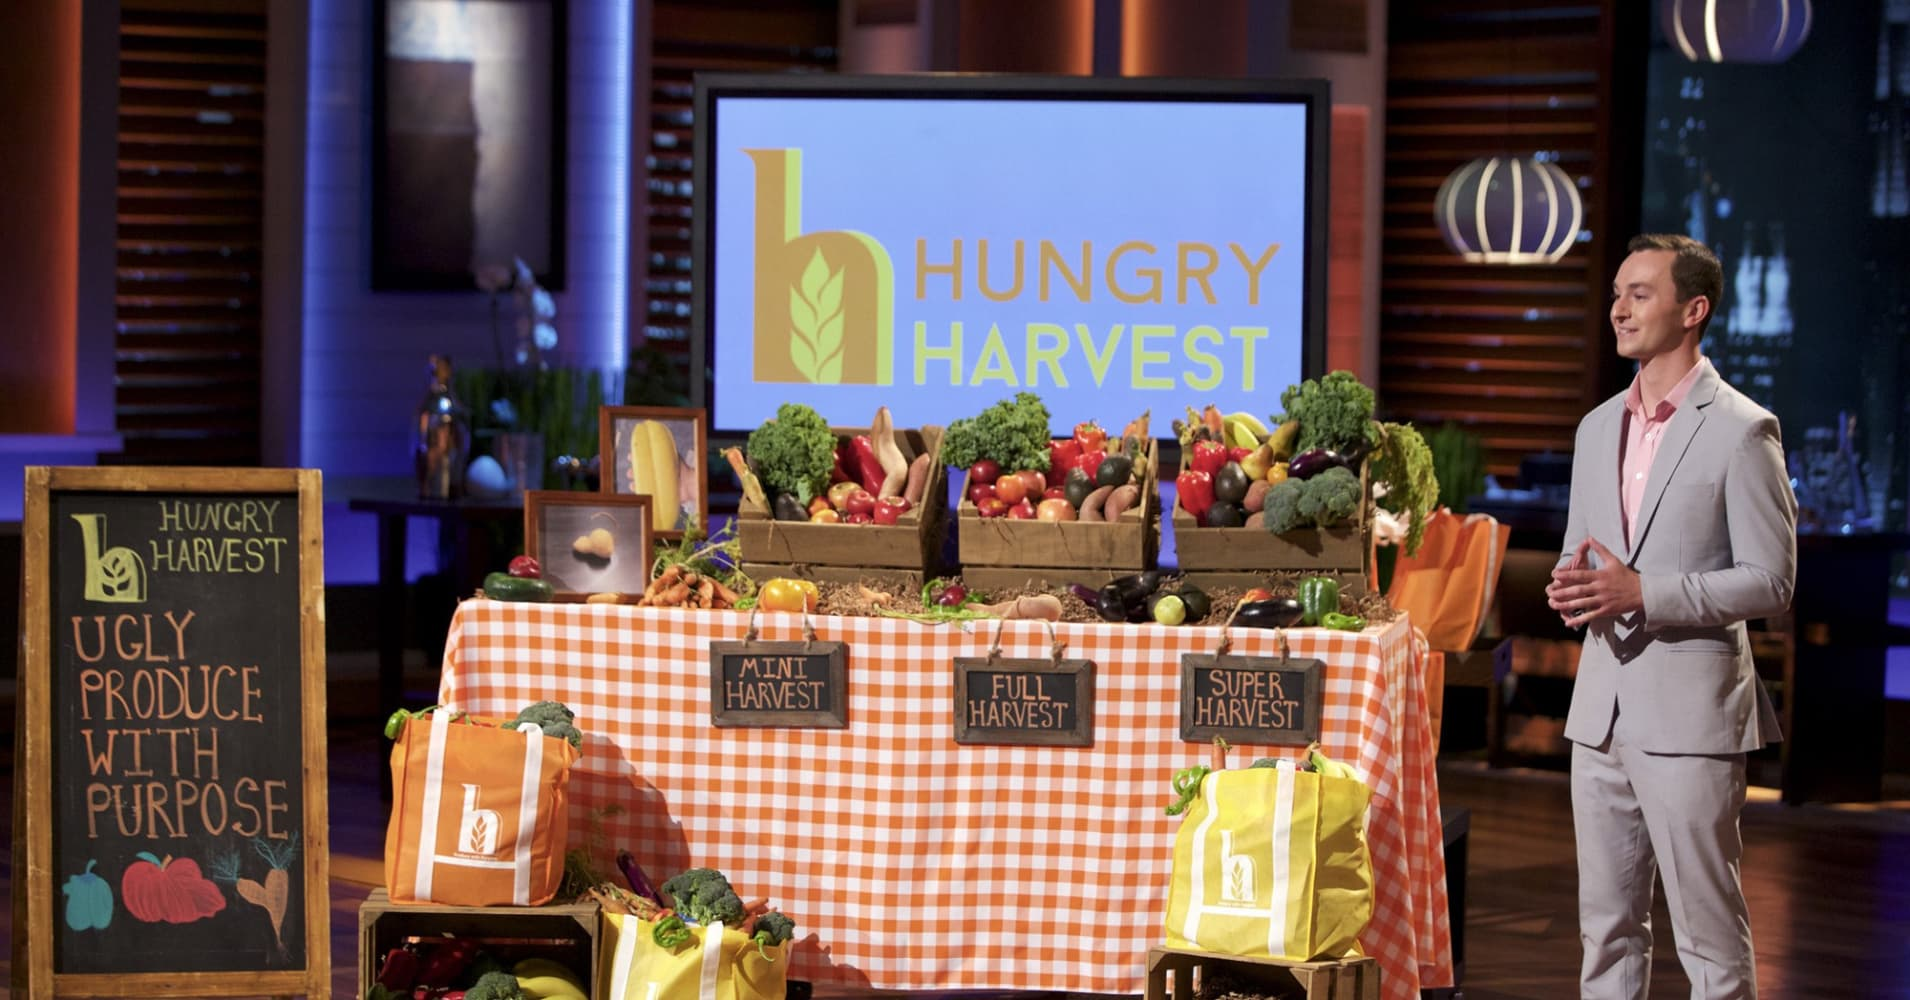 Hungry Harvest is a Shark Tank-backed produce delivery service on a mission to fight food waste and end hunger.